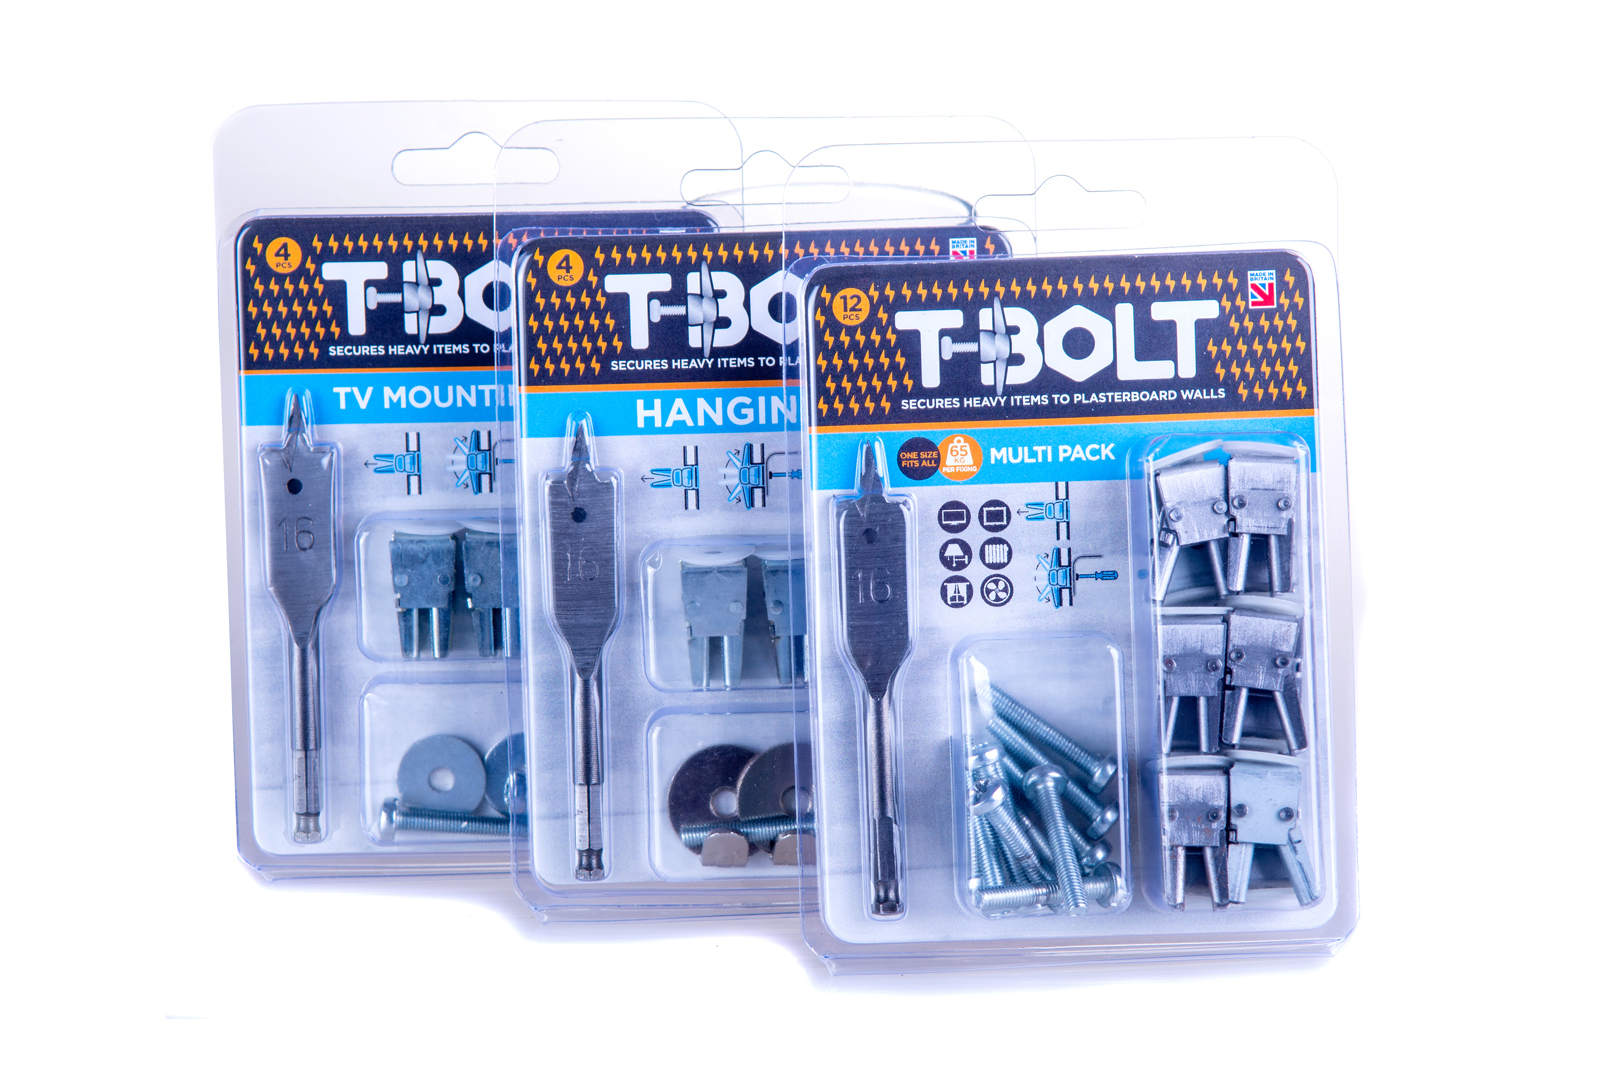 10 TBOLT plasterboard fixings to win